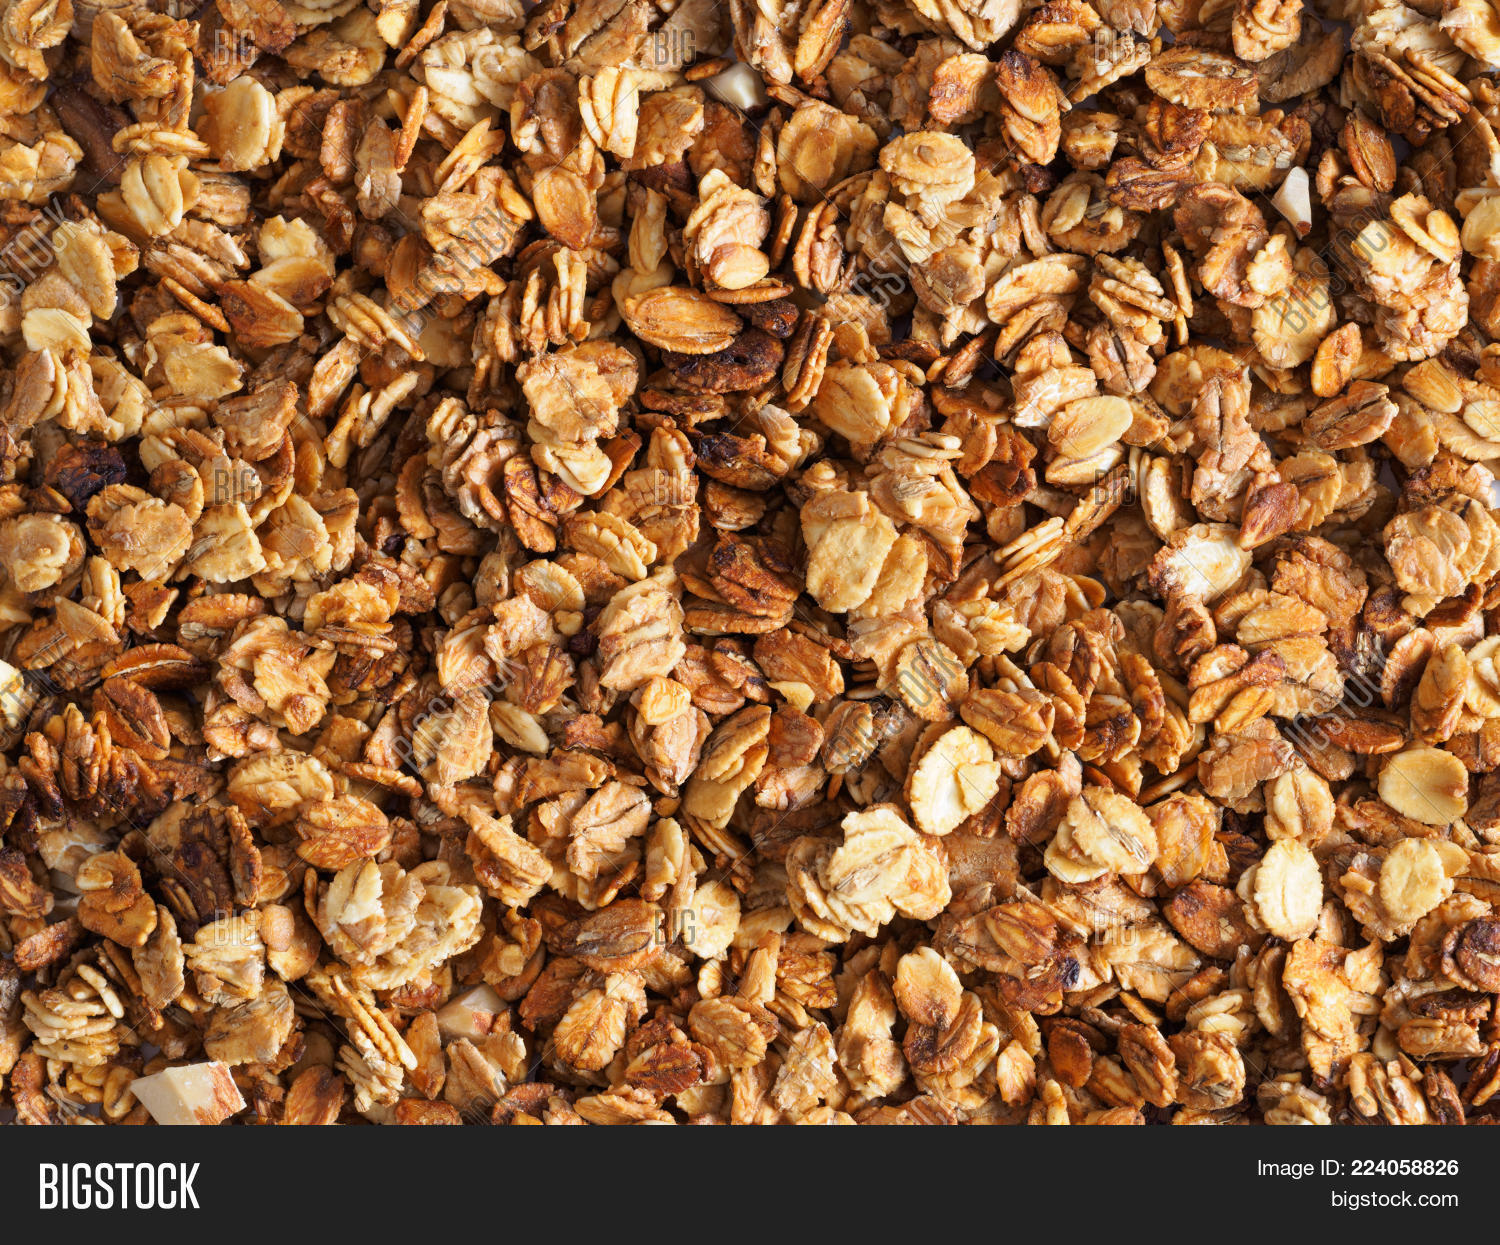 Organic homemade Granola Cereal with oats and almond. Texture oatmeal granola or muesli as background